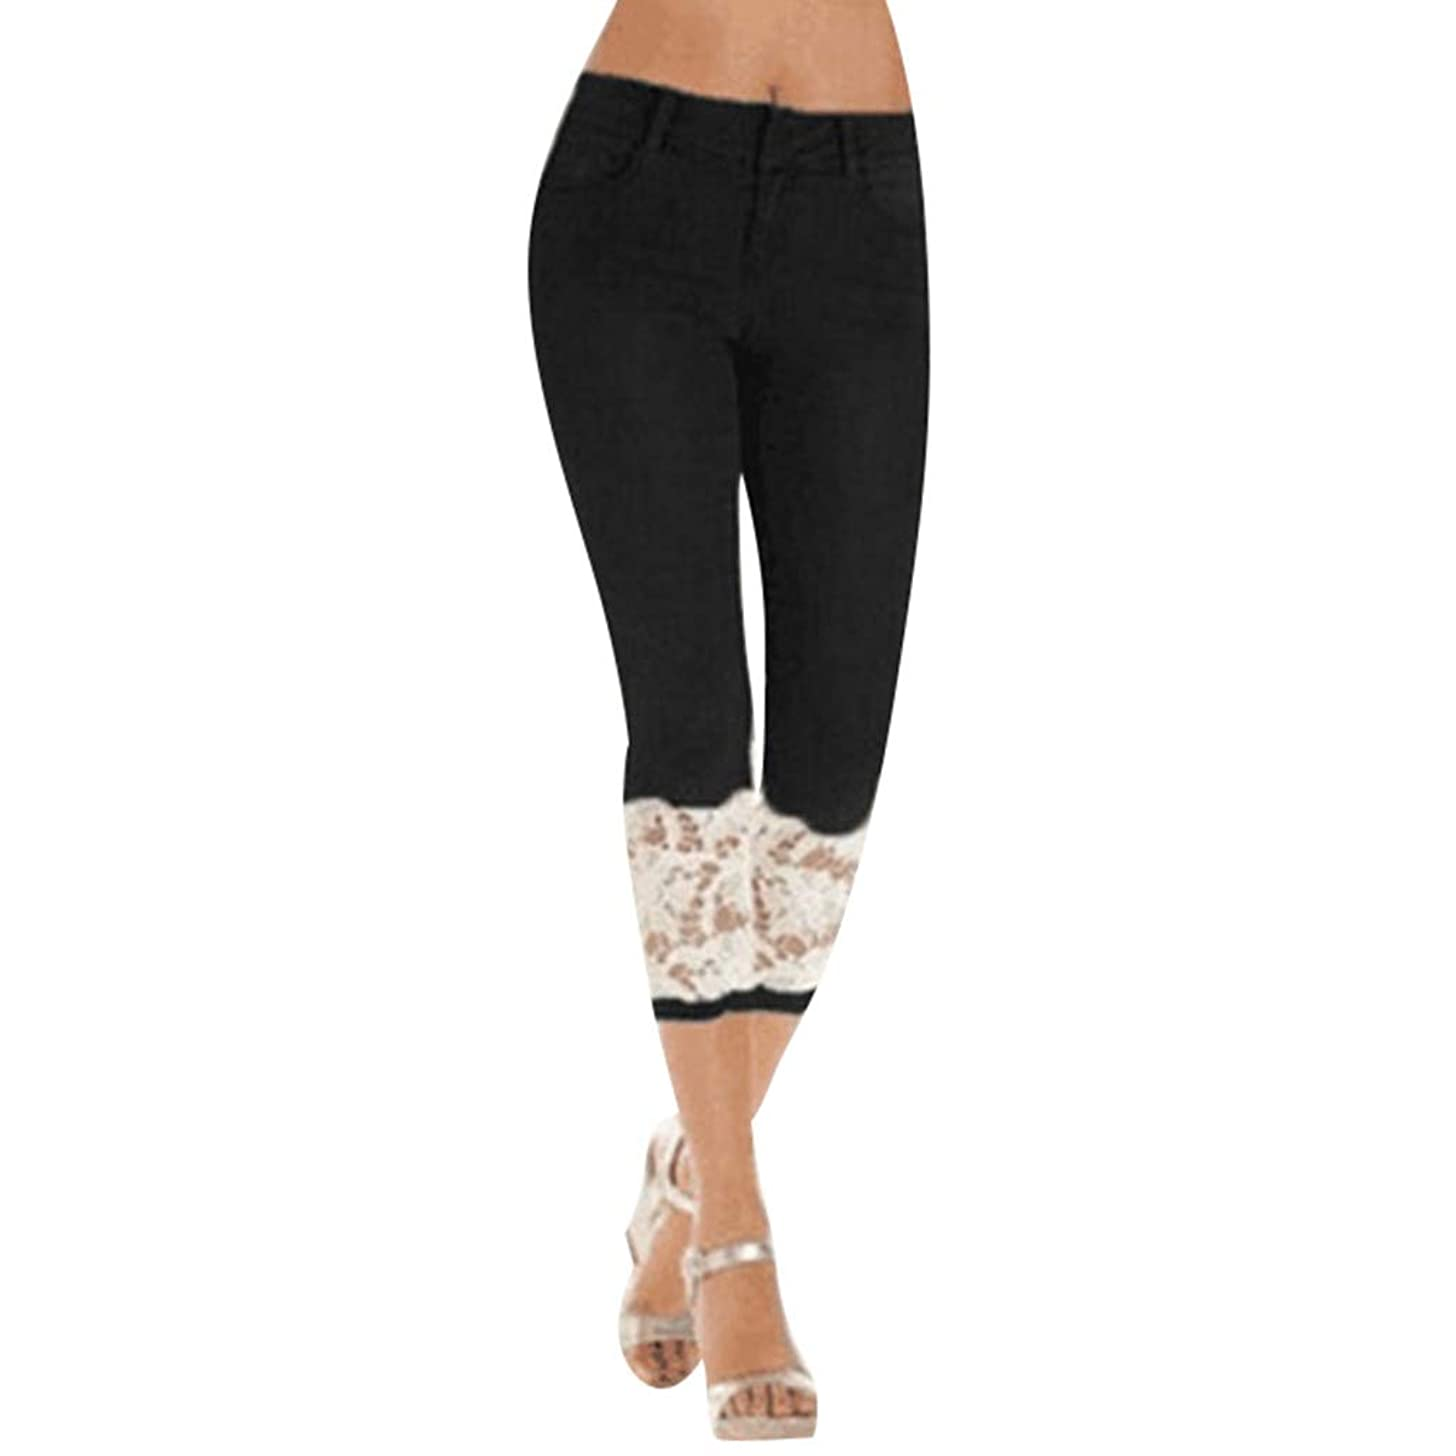 Sttech1 Women Yoga Leggings Lace Plus Size Skinny Sport Pants Exercise Trousers Cropped Jeans